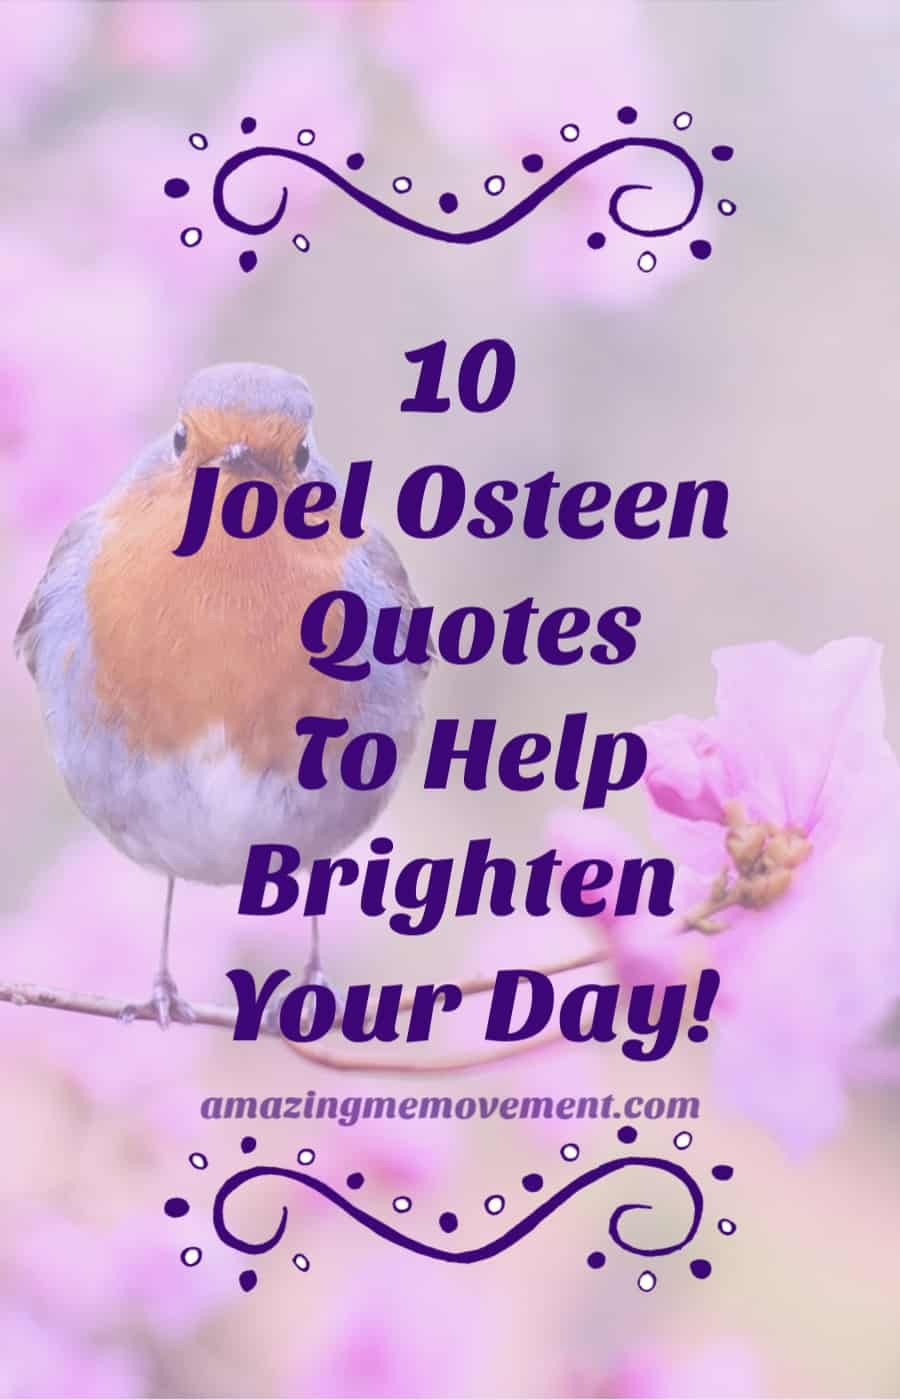 10 Joel Osteen quotes to brighten your day